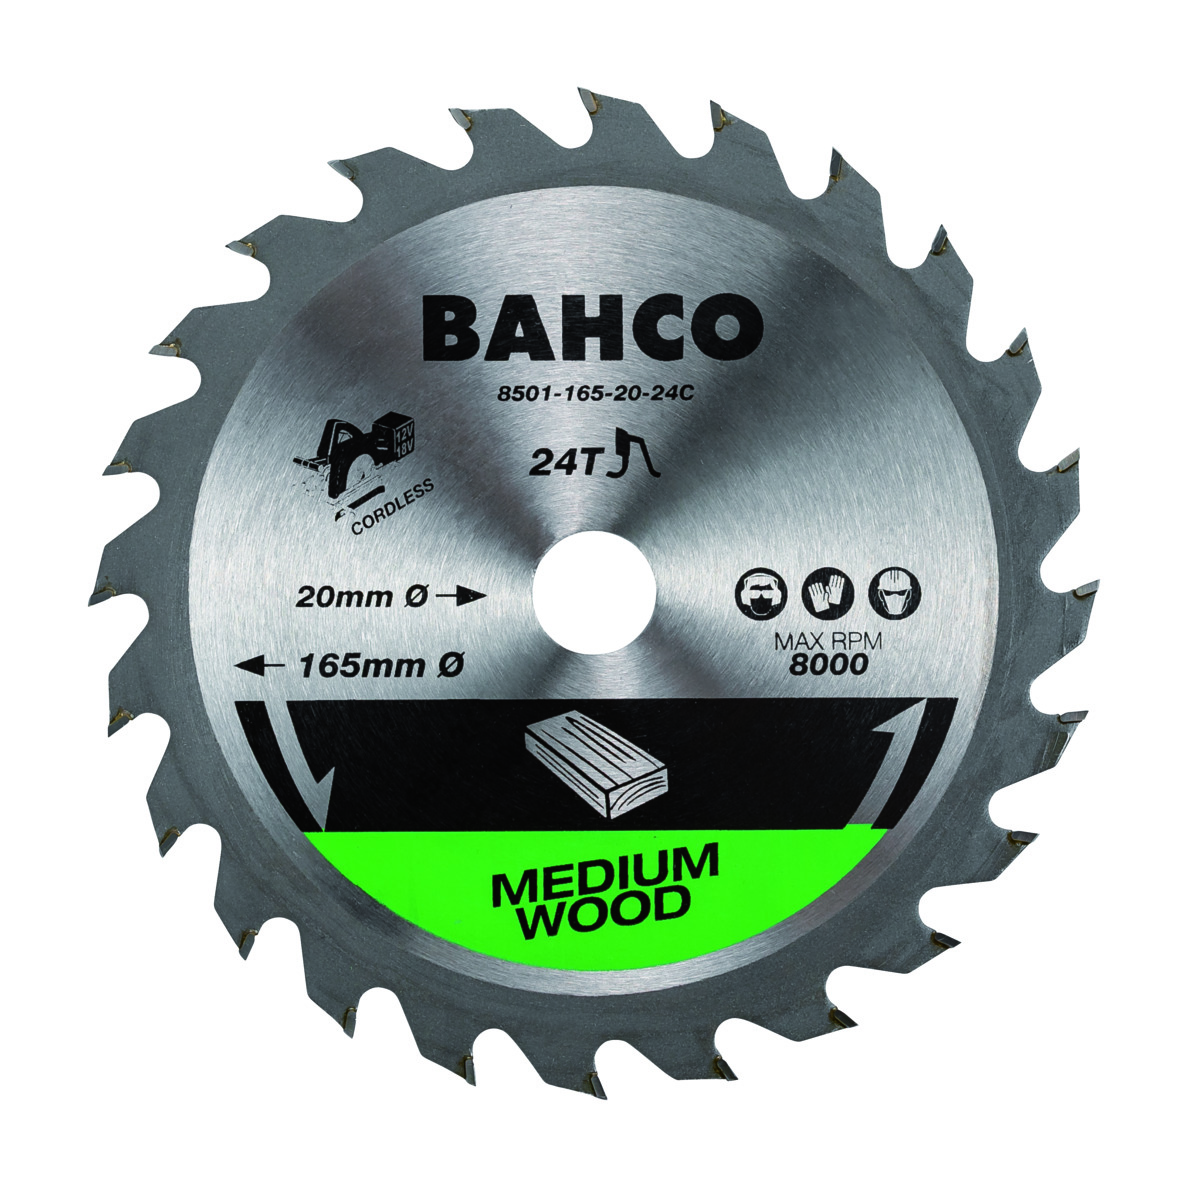 Circular saw blade for cordless saw machines 190x30mm 24T for wood